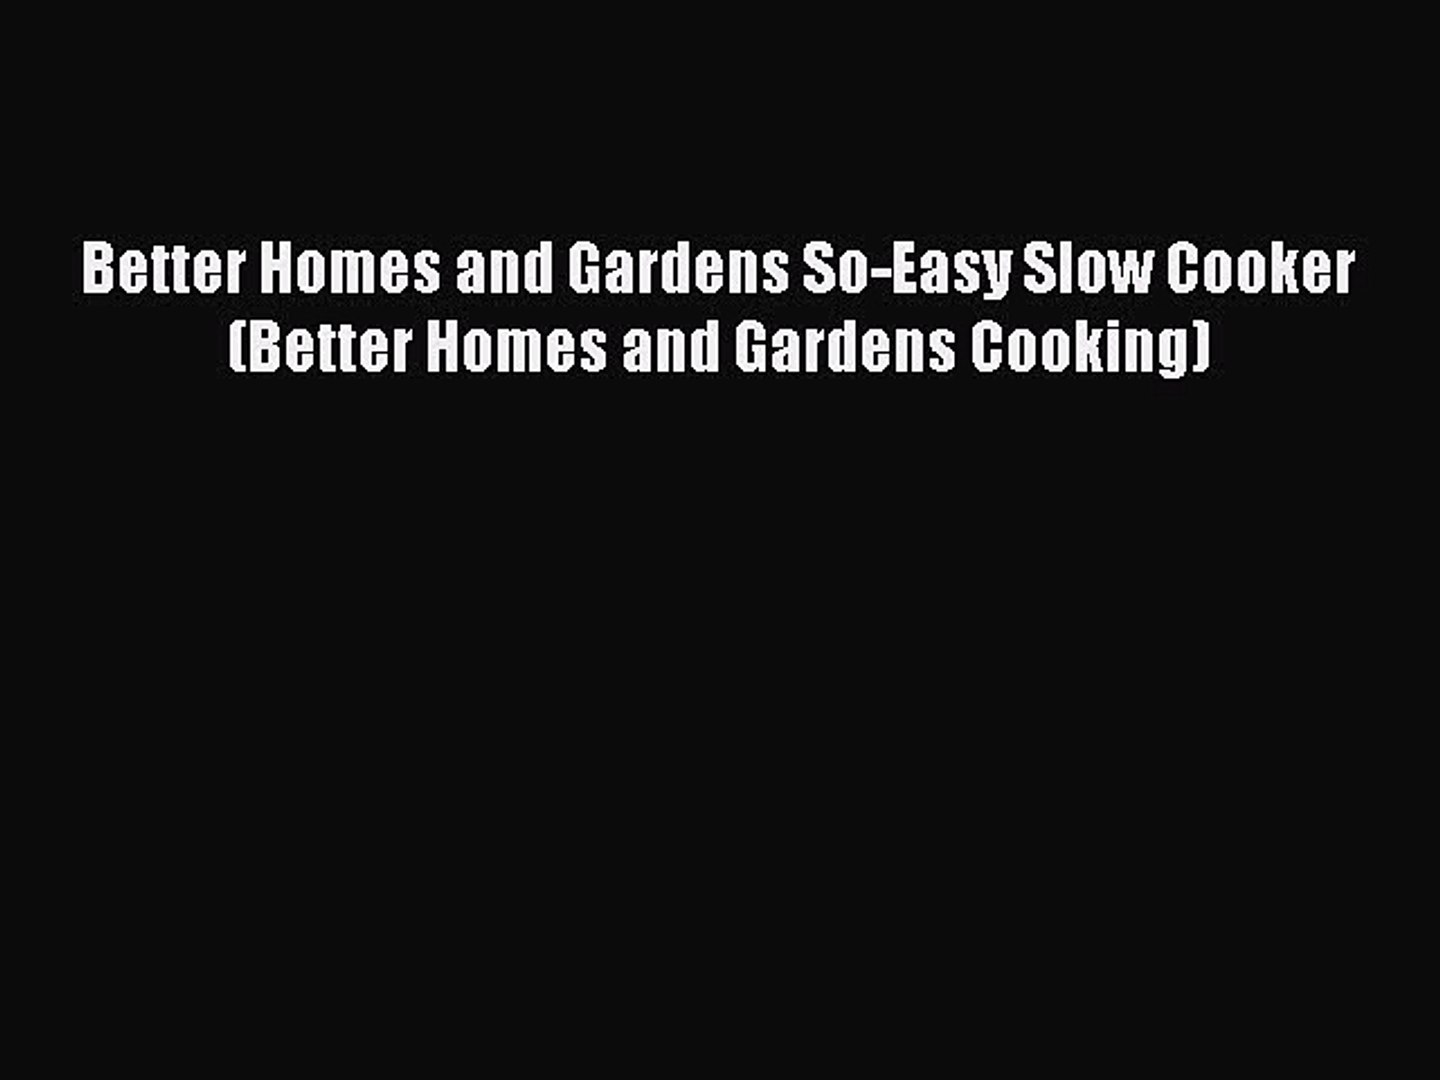 [Read Book] Better Homes and Gardens So-Easy Slow Cooker (Better Homes and Gardens Cooking)